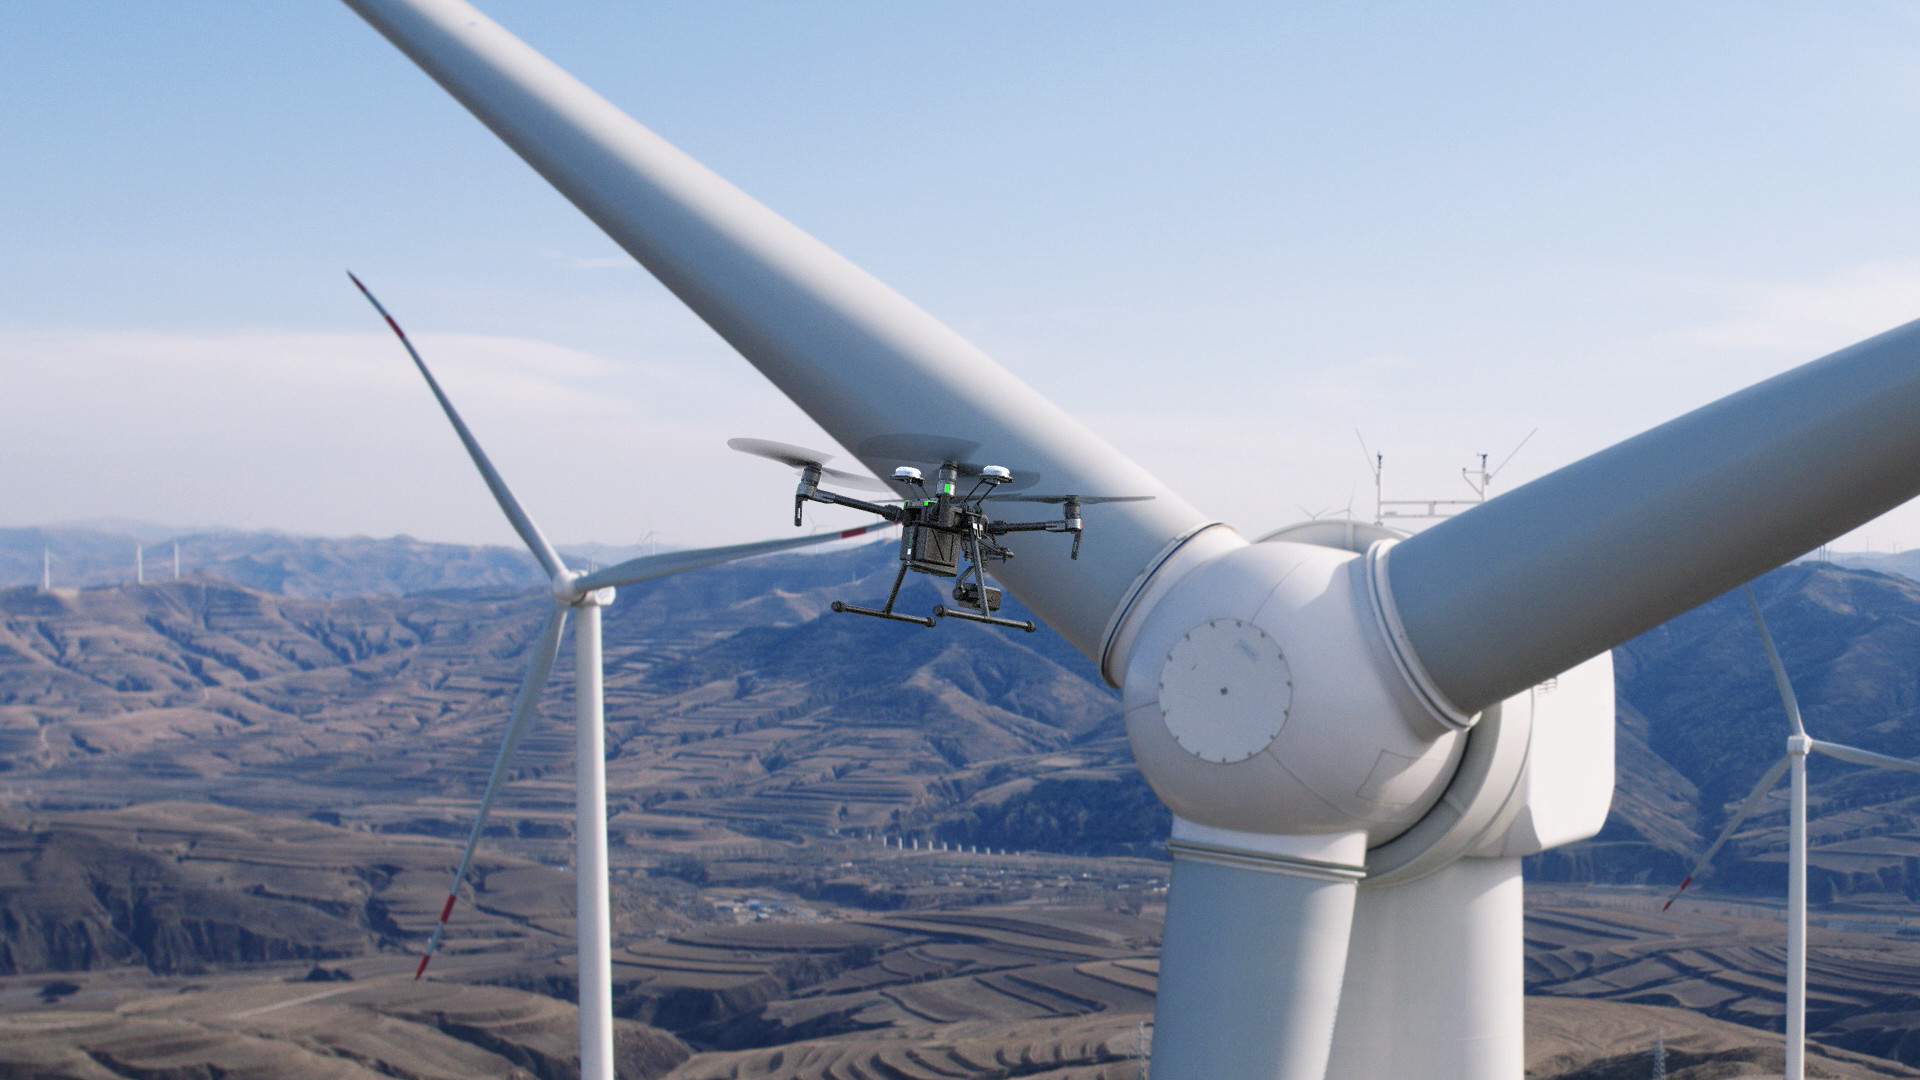 DJI-M200-M210-M210RTK-wind-turbine-windmill-inspection.jpg